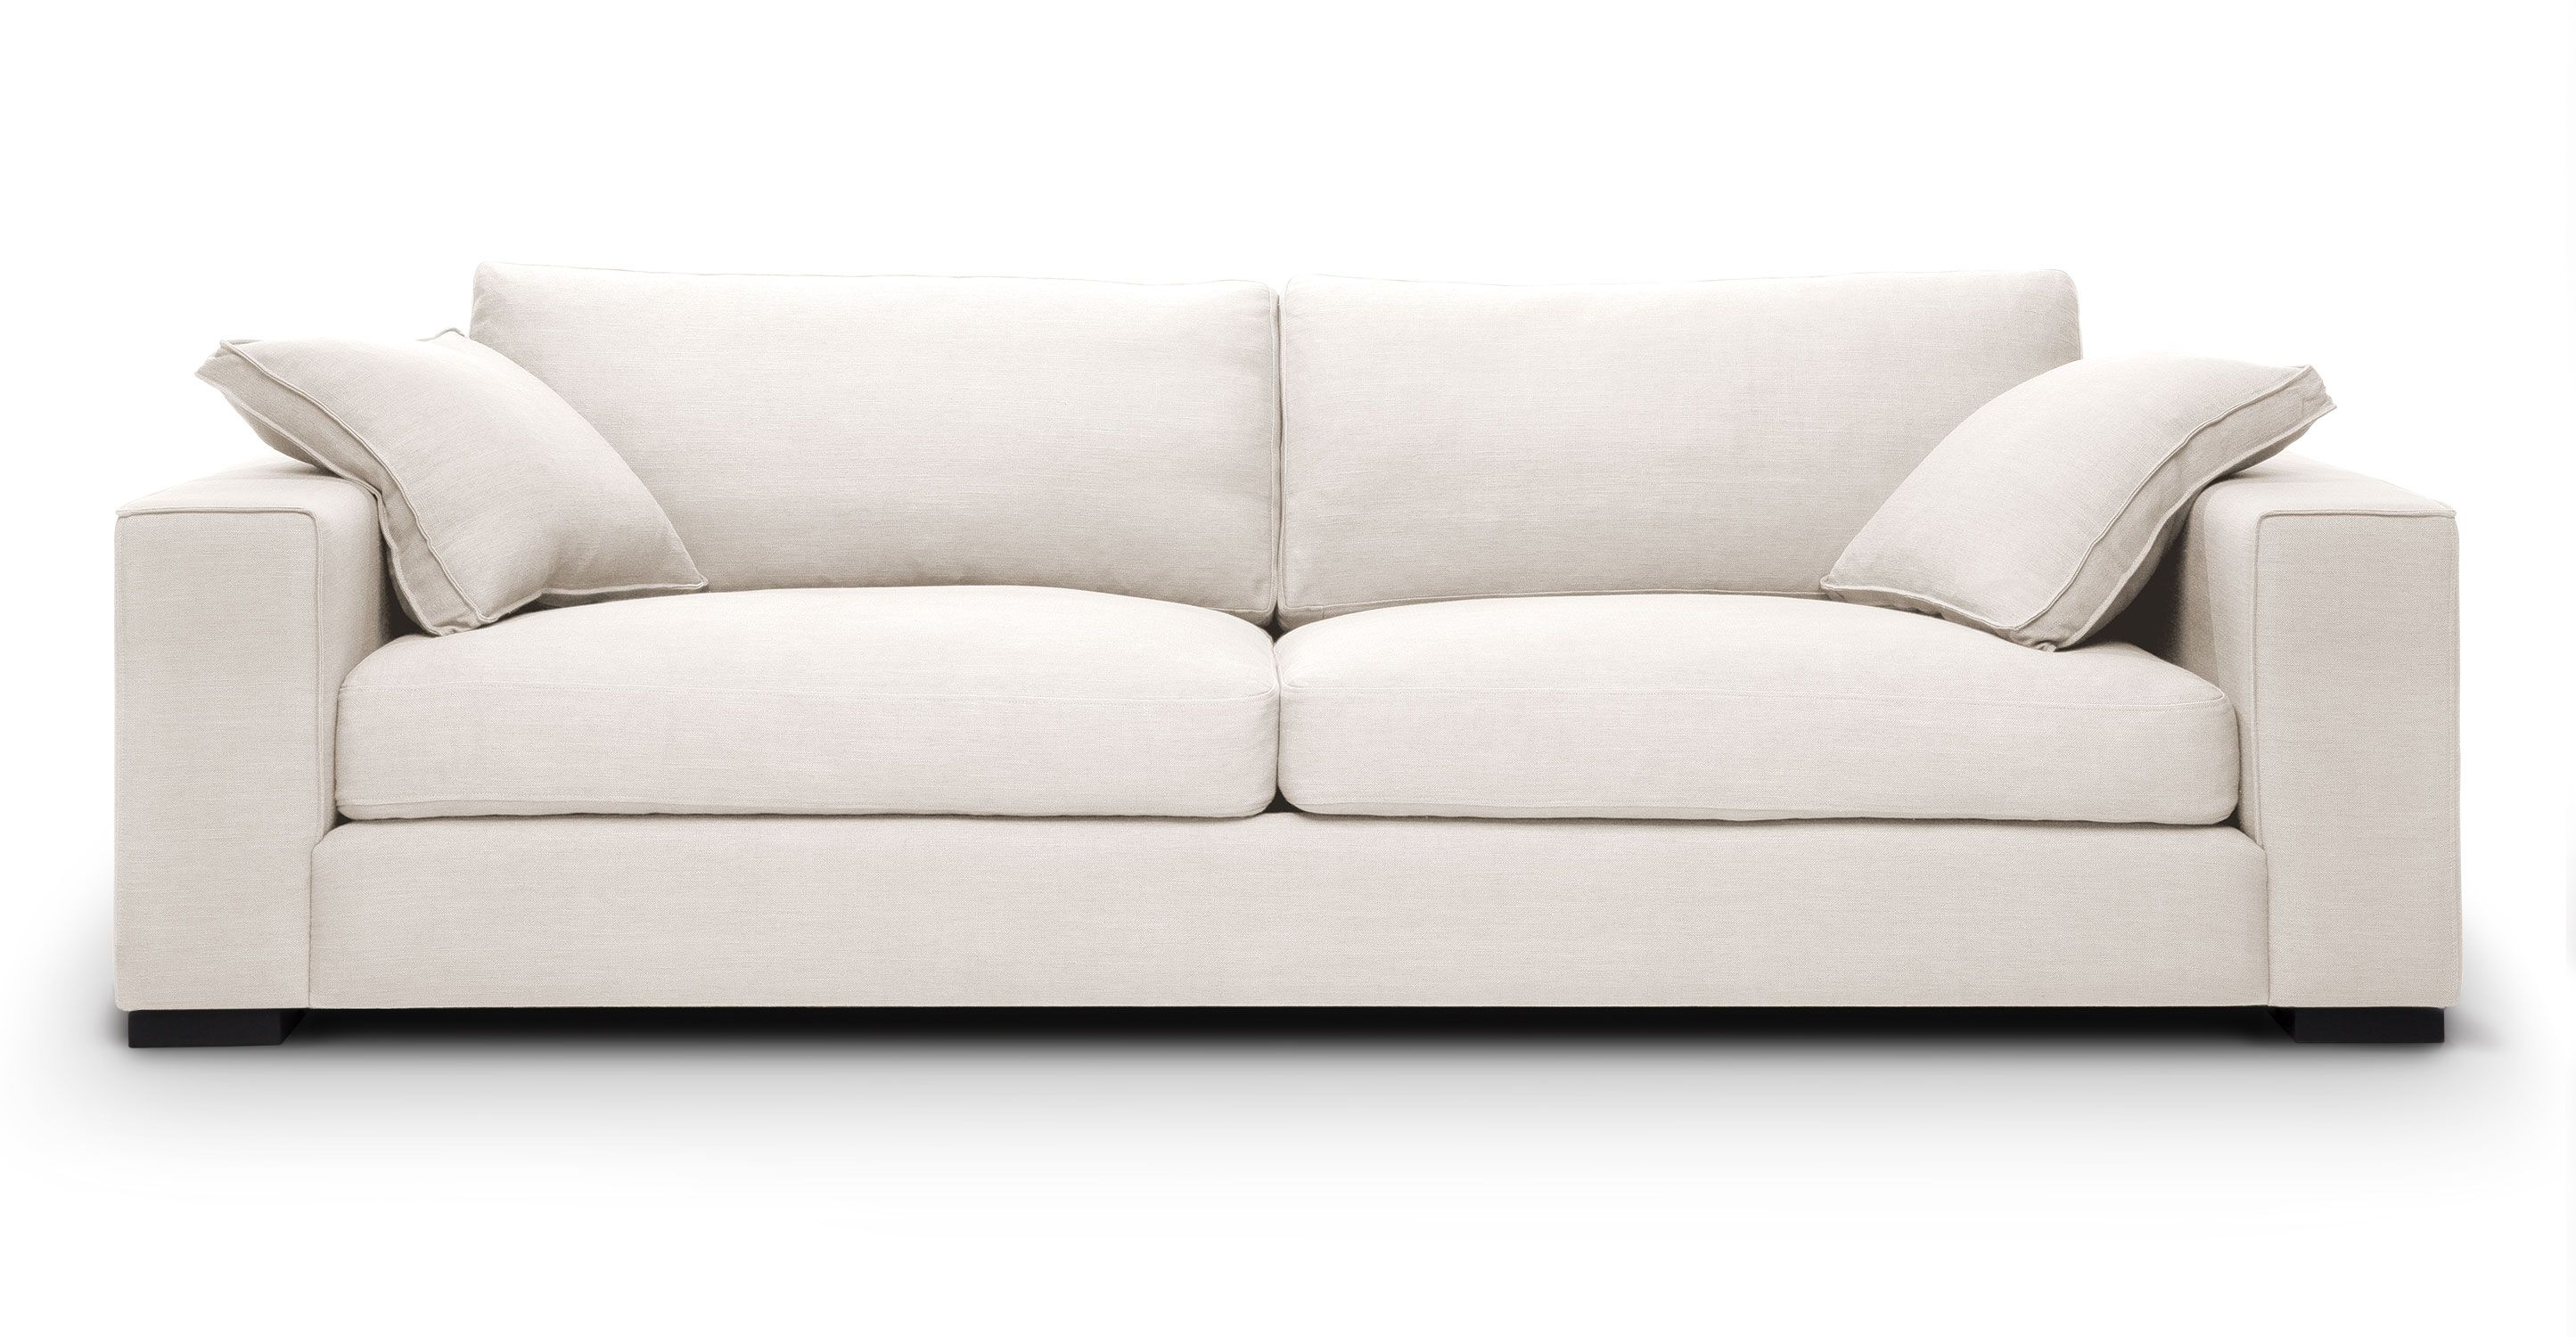 Bettsofas Modern White Sofa With Solid Wood Legs | Article Stika Modern